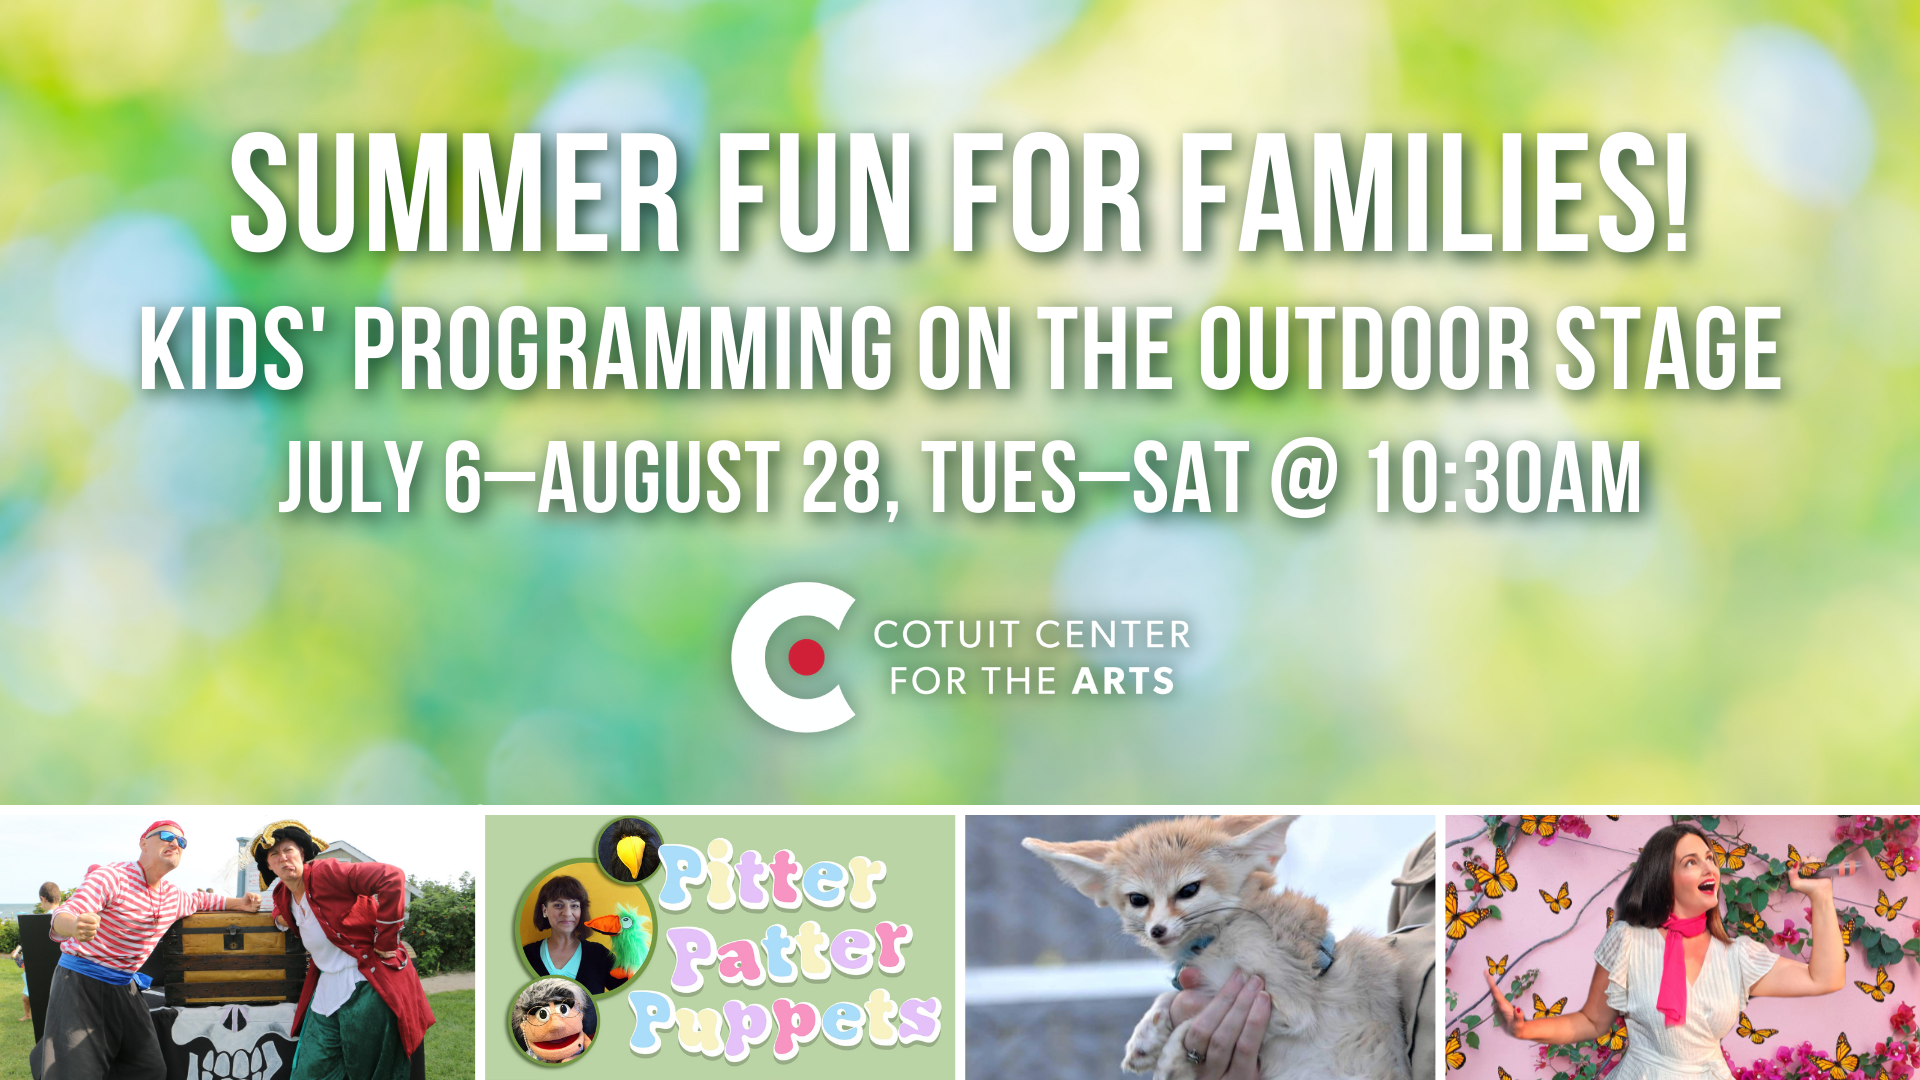 Summer Family Programming on the Outdoor Stage